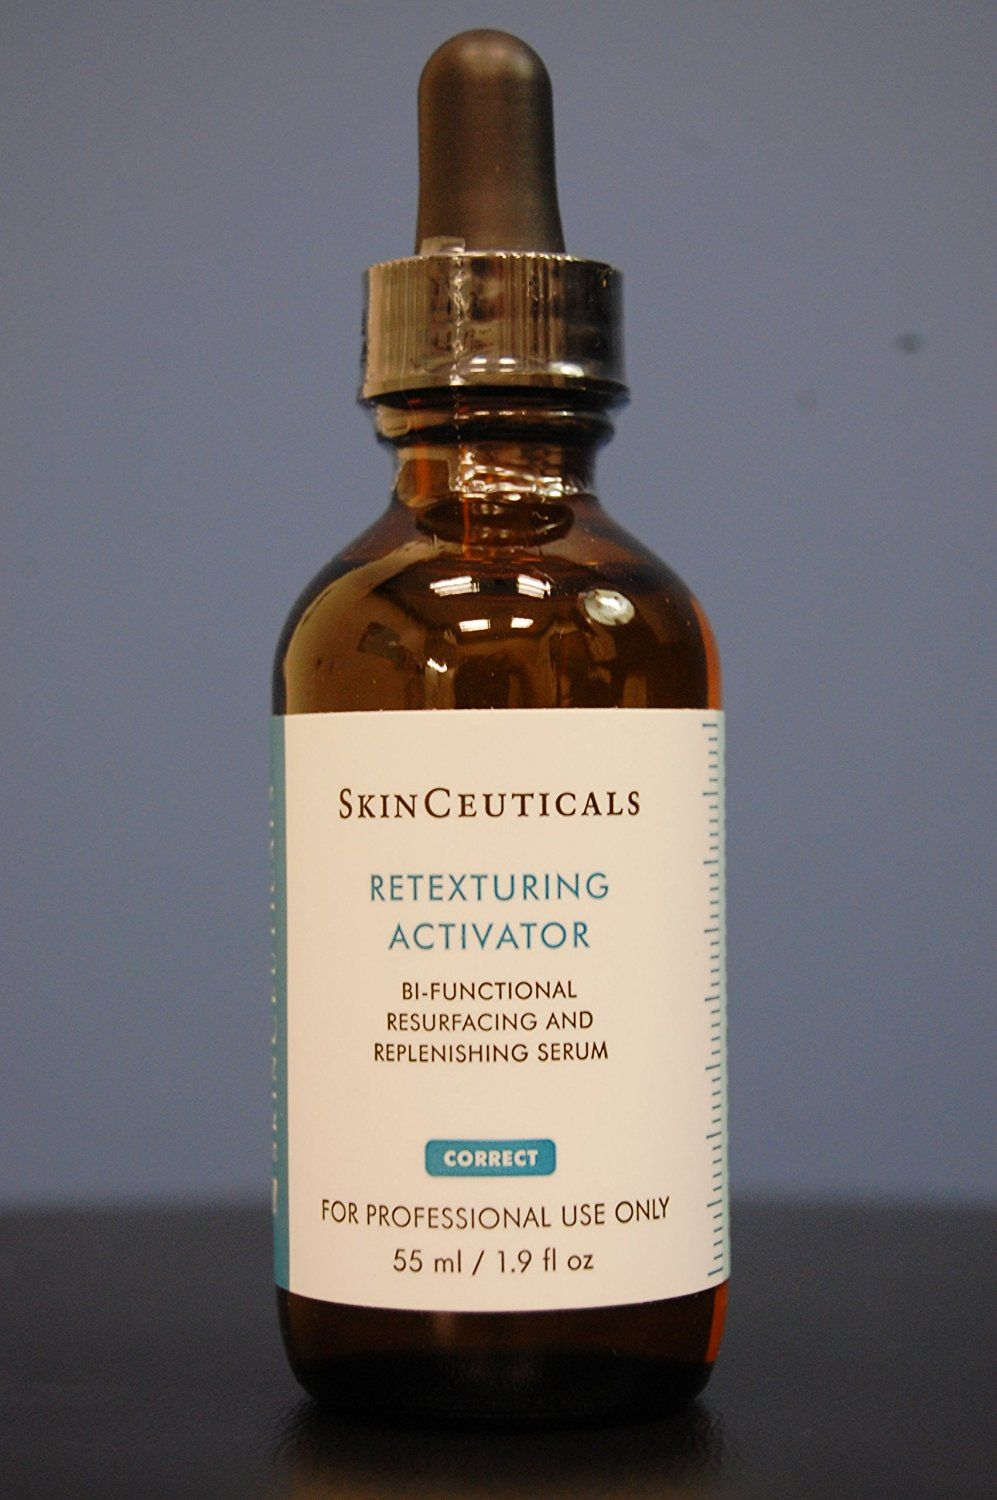 Skinceuticals Retexturing Activator Pro Size 1 9 Fl Oz This Is